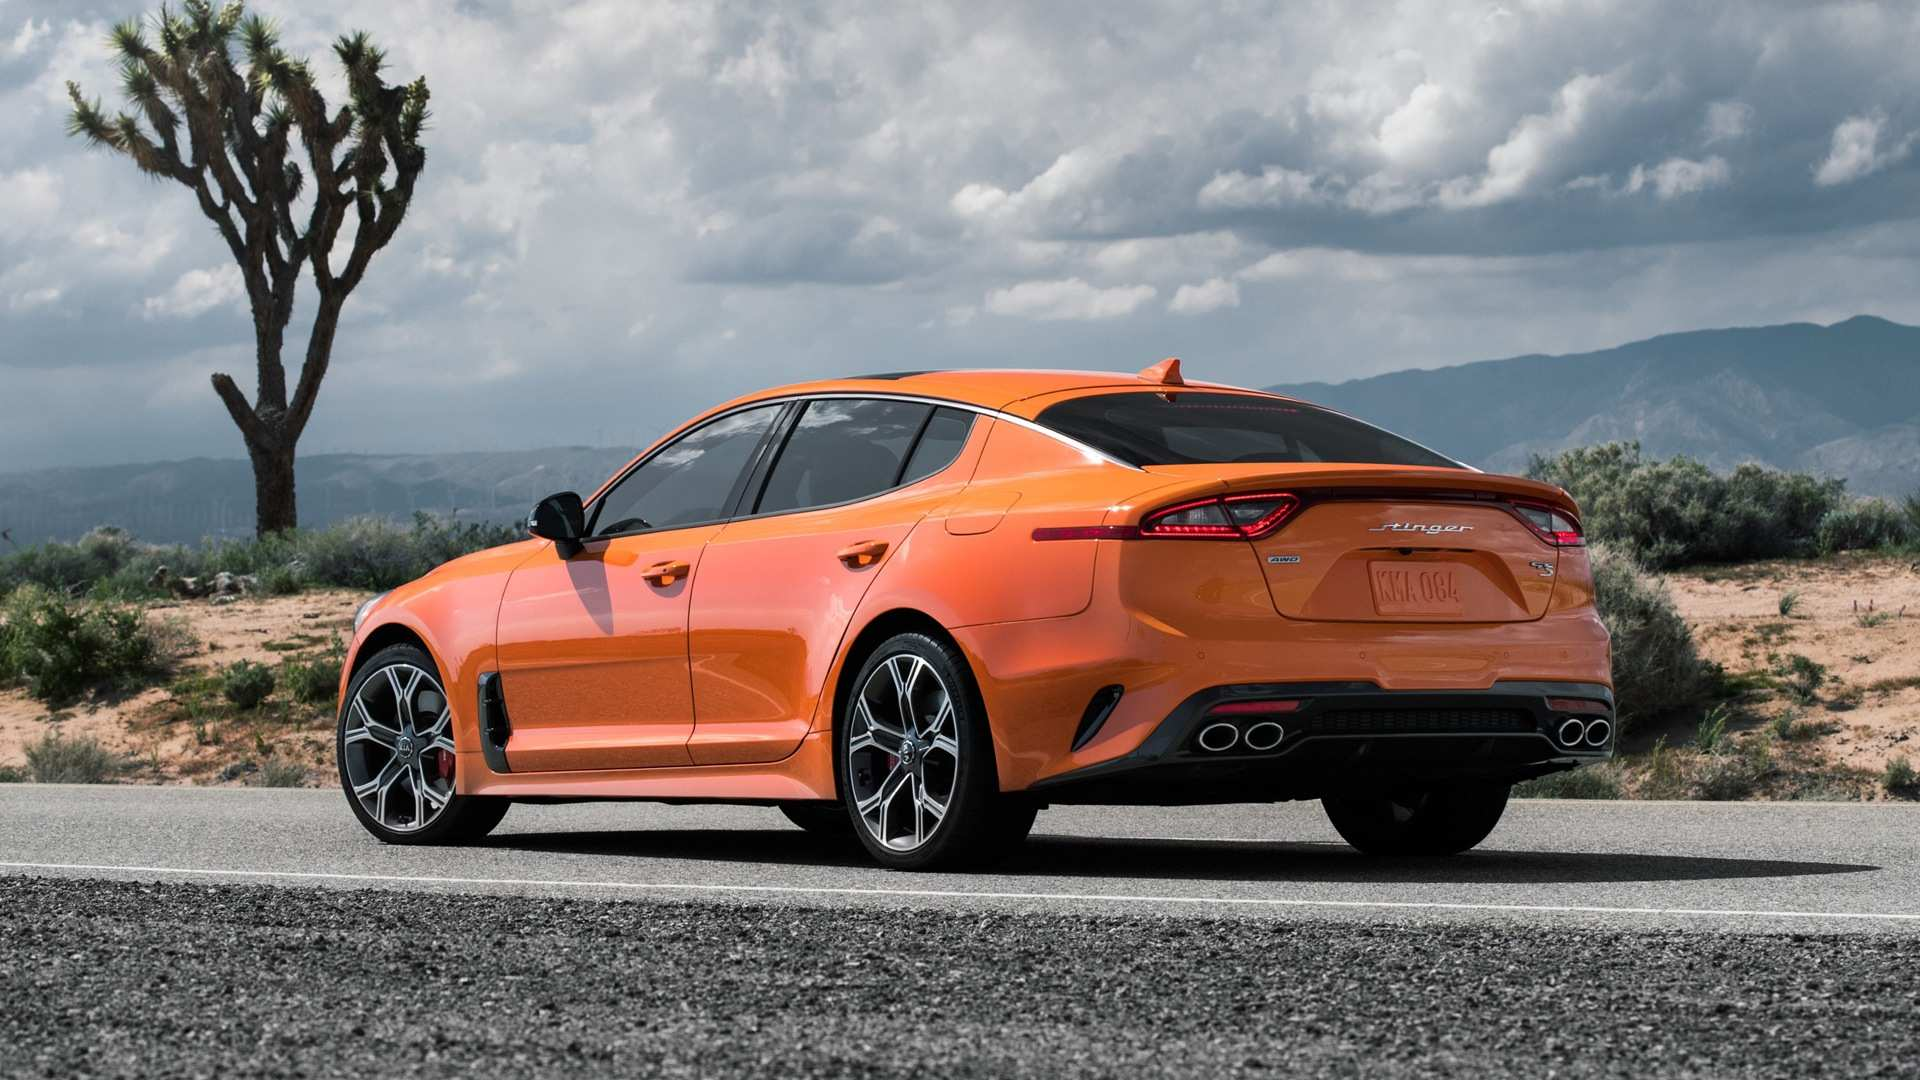 89 Gallery of 2020 Kia Stinger Gt Engine by 2020 Kia Stinger Gt